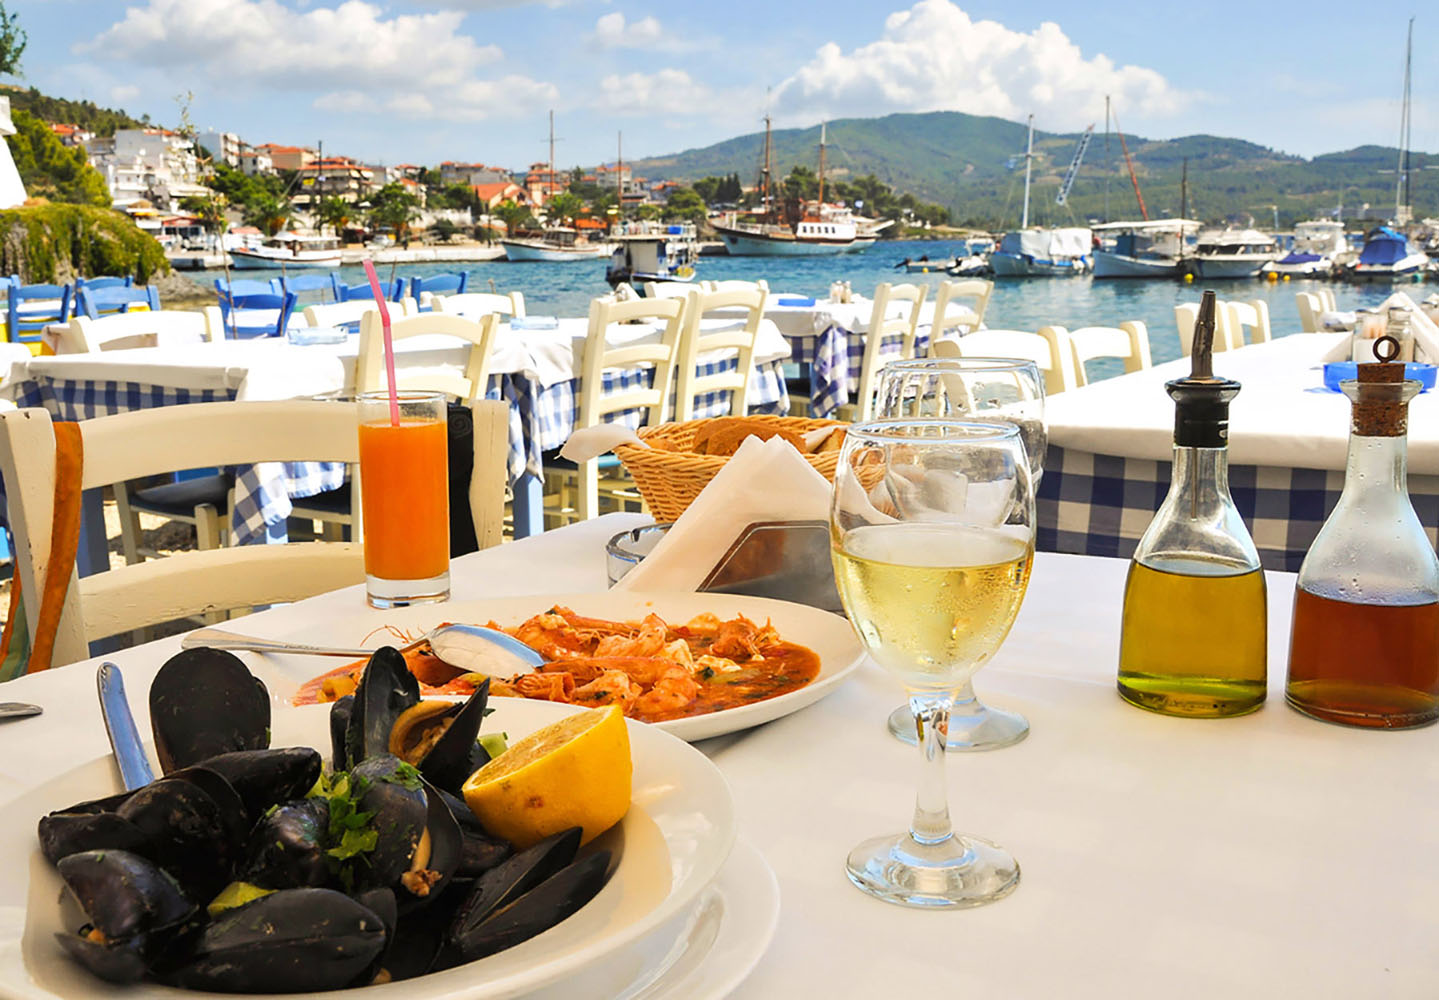 Enjoy the diverse cuisine of Greece when you cruise there with Azamara.